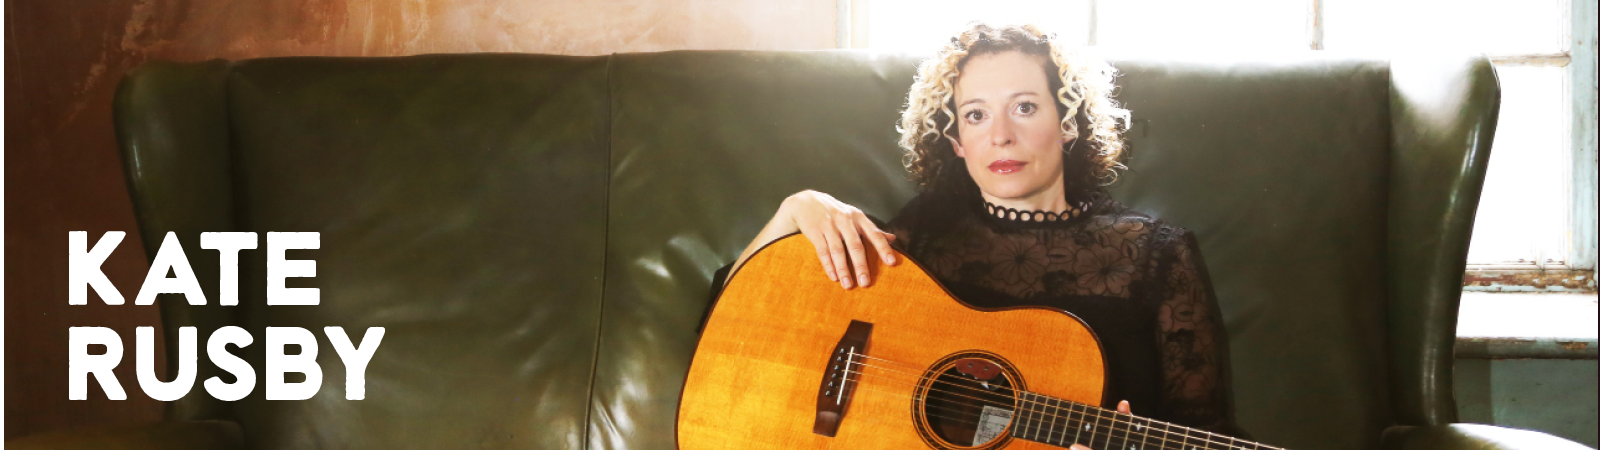 Kate Rusby at Bristol Folk Festival